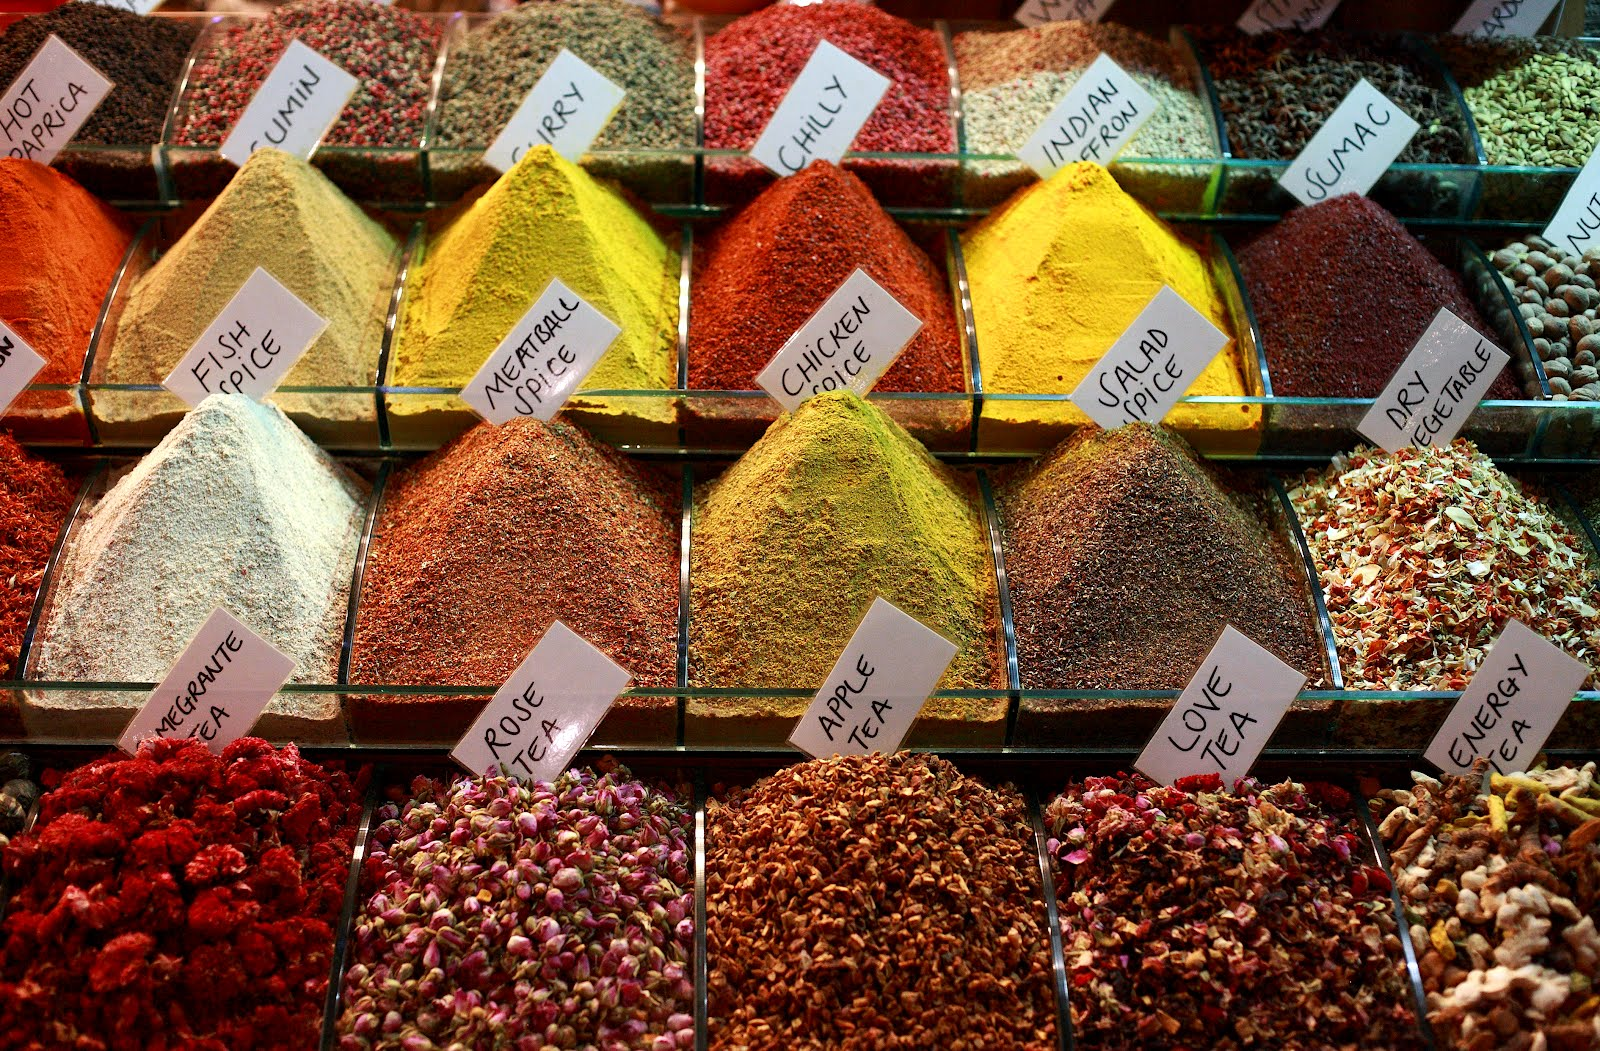 Istanbul Spice